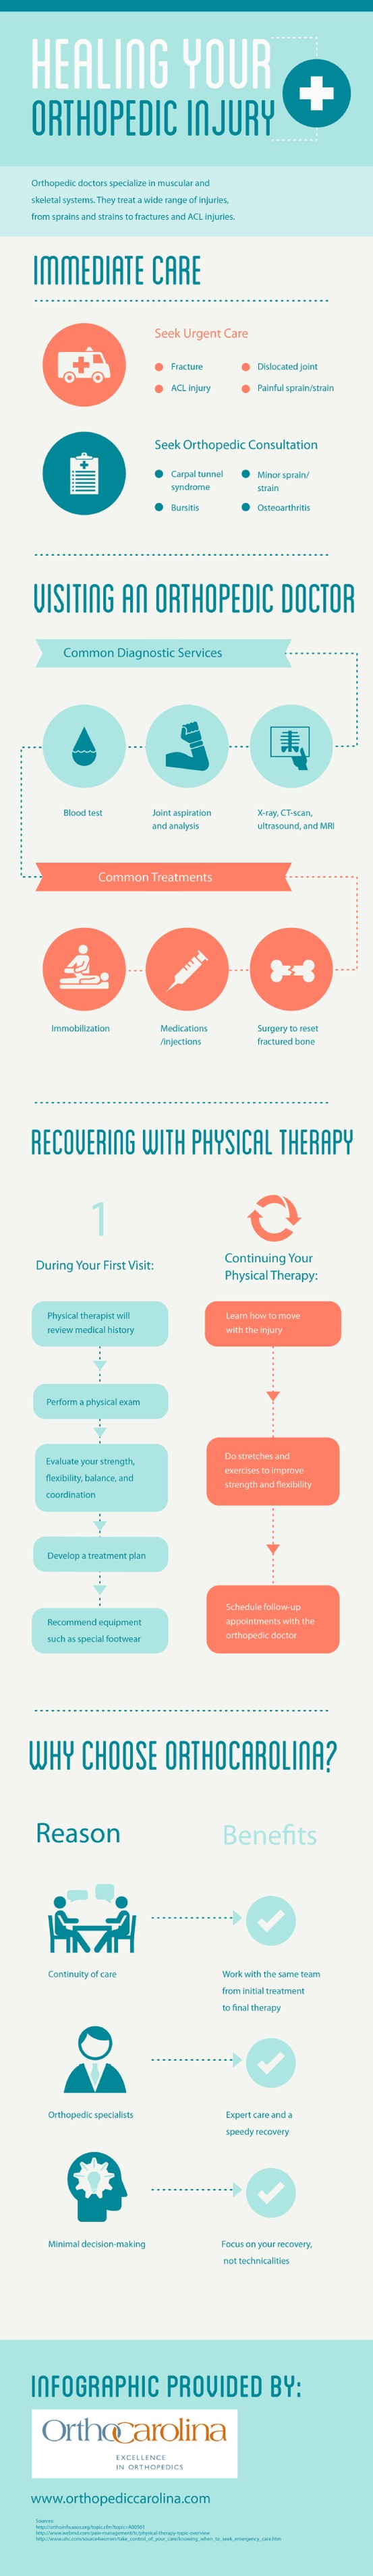 During your first physical therapy session, the therapist